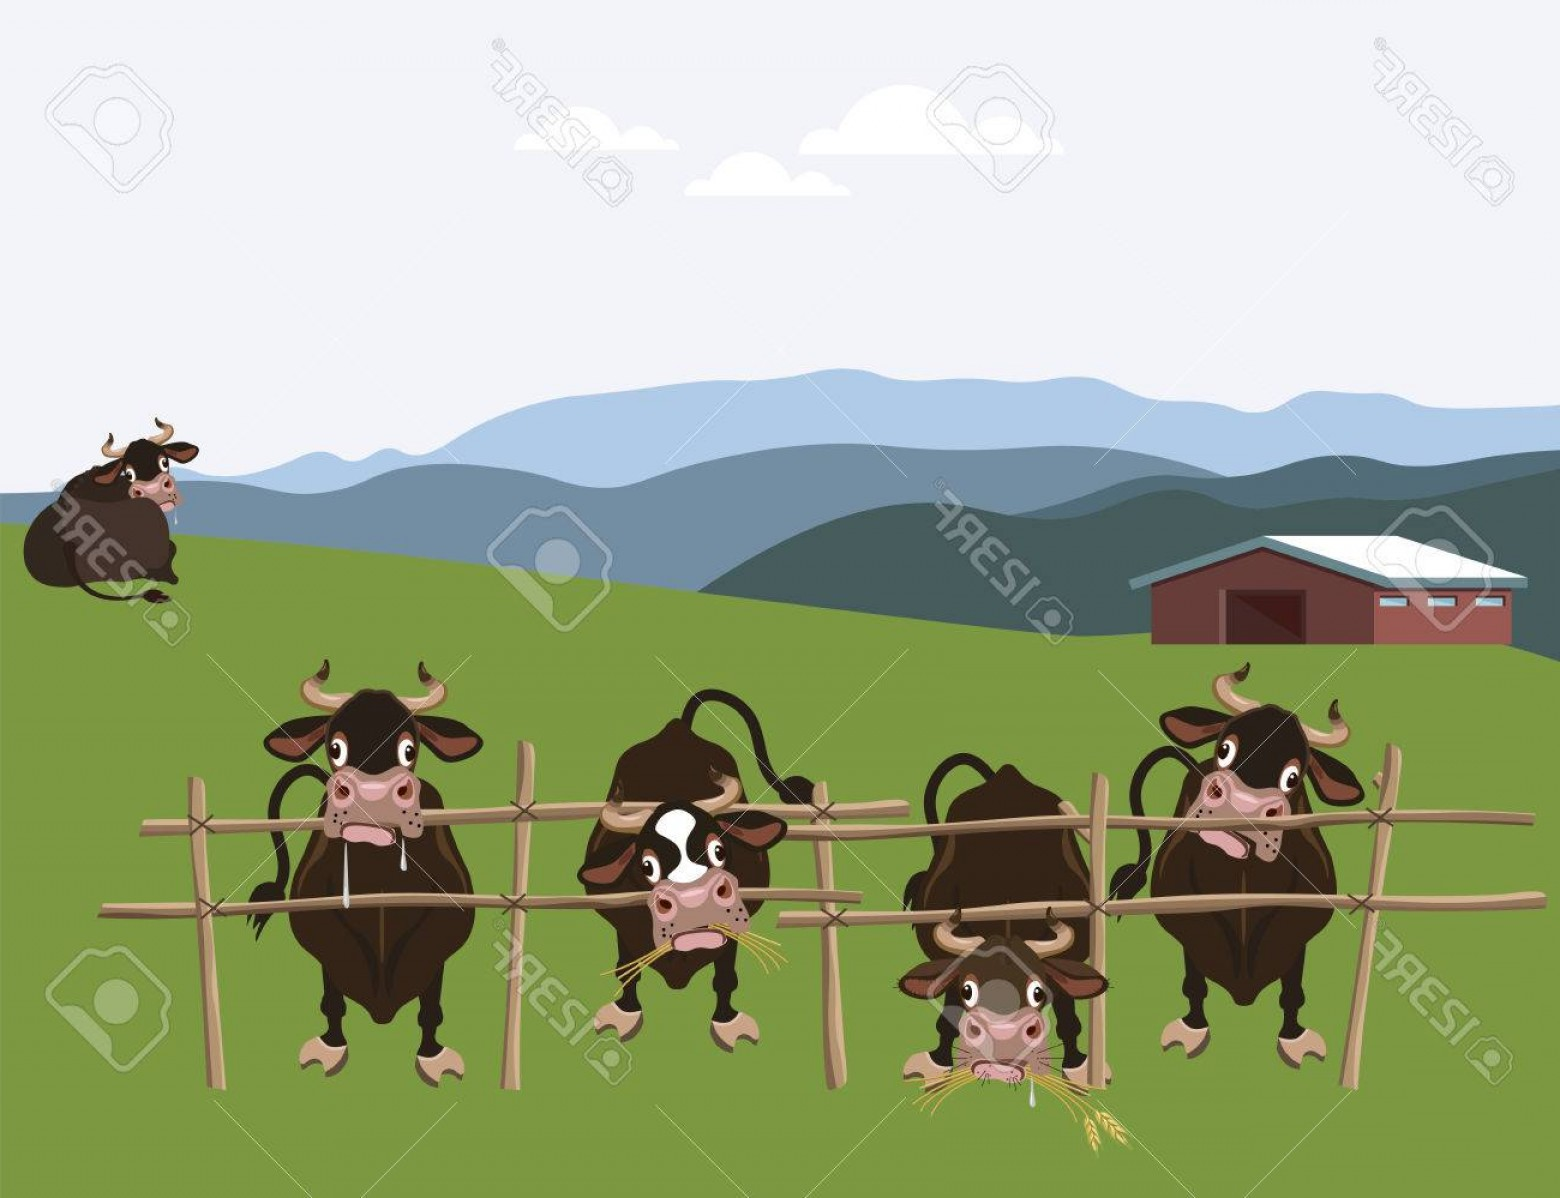 Farm Vector Illustration: Photostock Vector Alpine Cattle Farm Vector Illustration